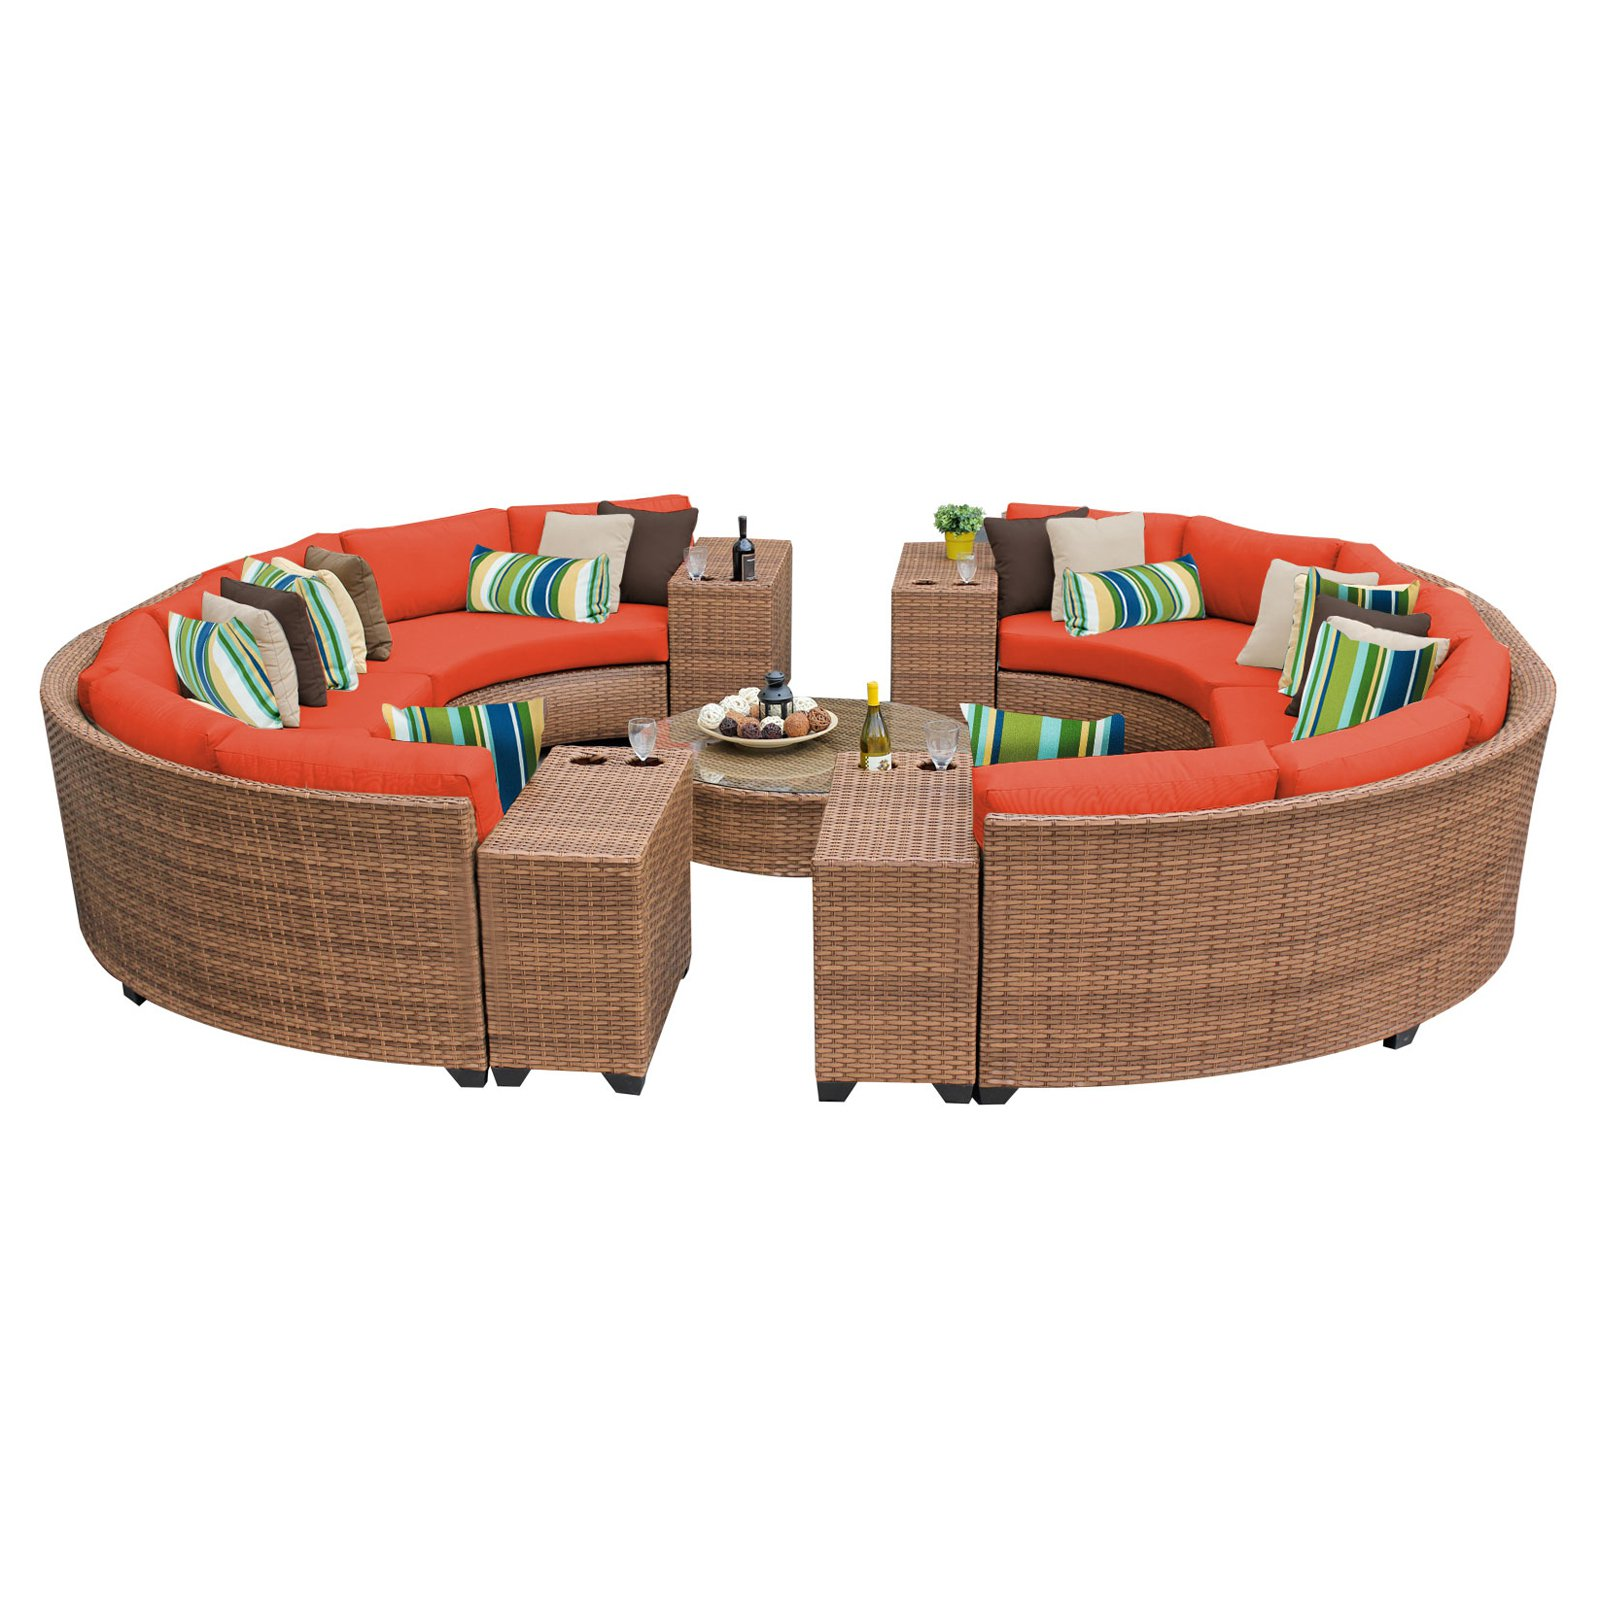 TK Classics Laguna Wicker 11 Piece Patio Conversation Set with Cup Table and 2 Sets of Cushion Covers